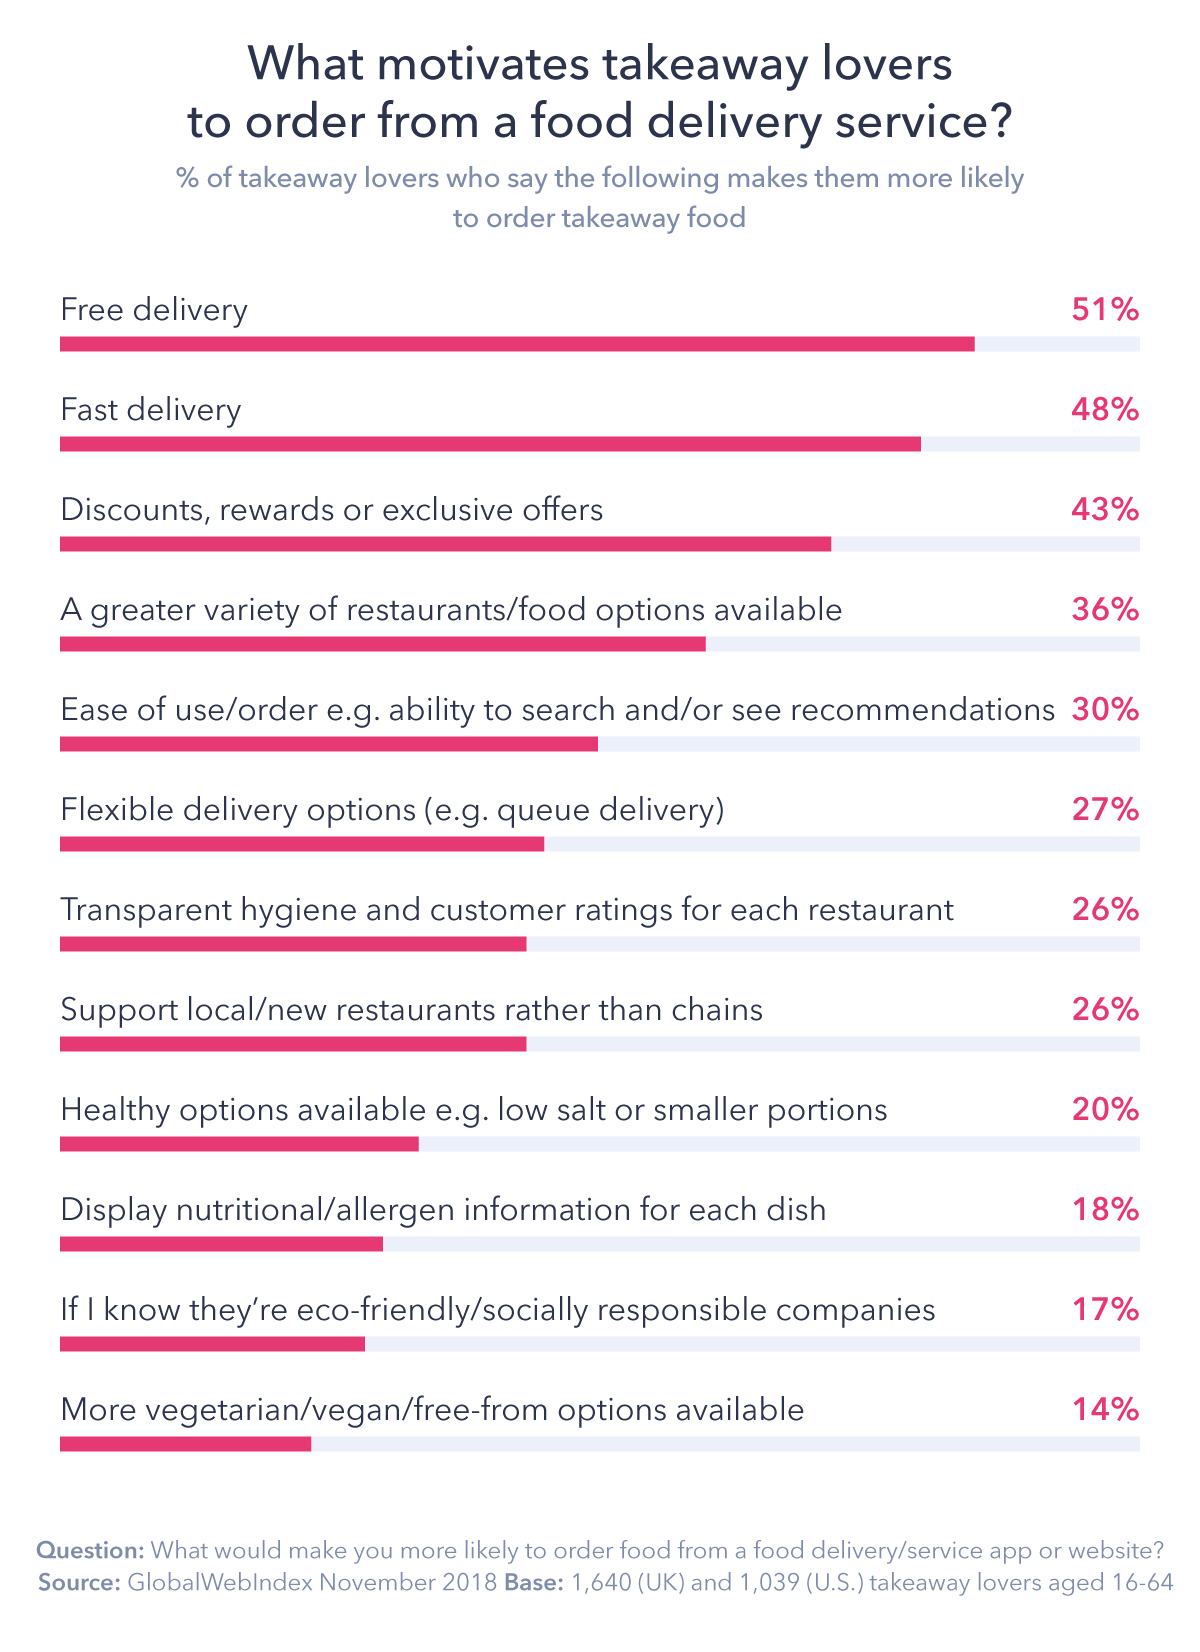 Blog-Chart-4 5 Key Insights into Takeaway Food Delivery Apps and Services | ::: PHMC GPE LLC :::: Marketing & Corp. Communication Agency